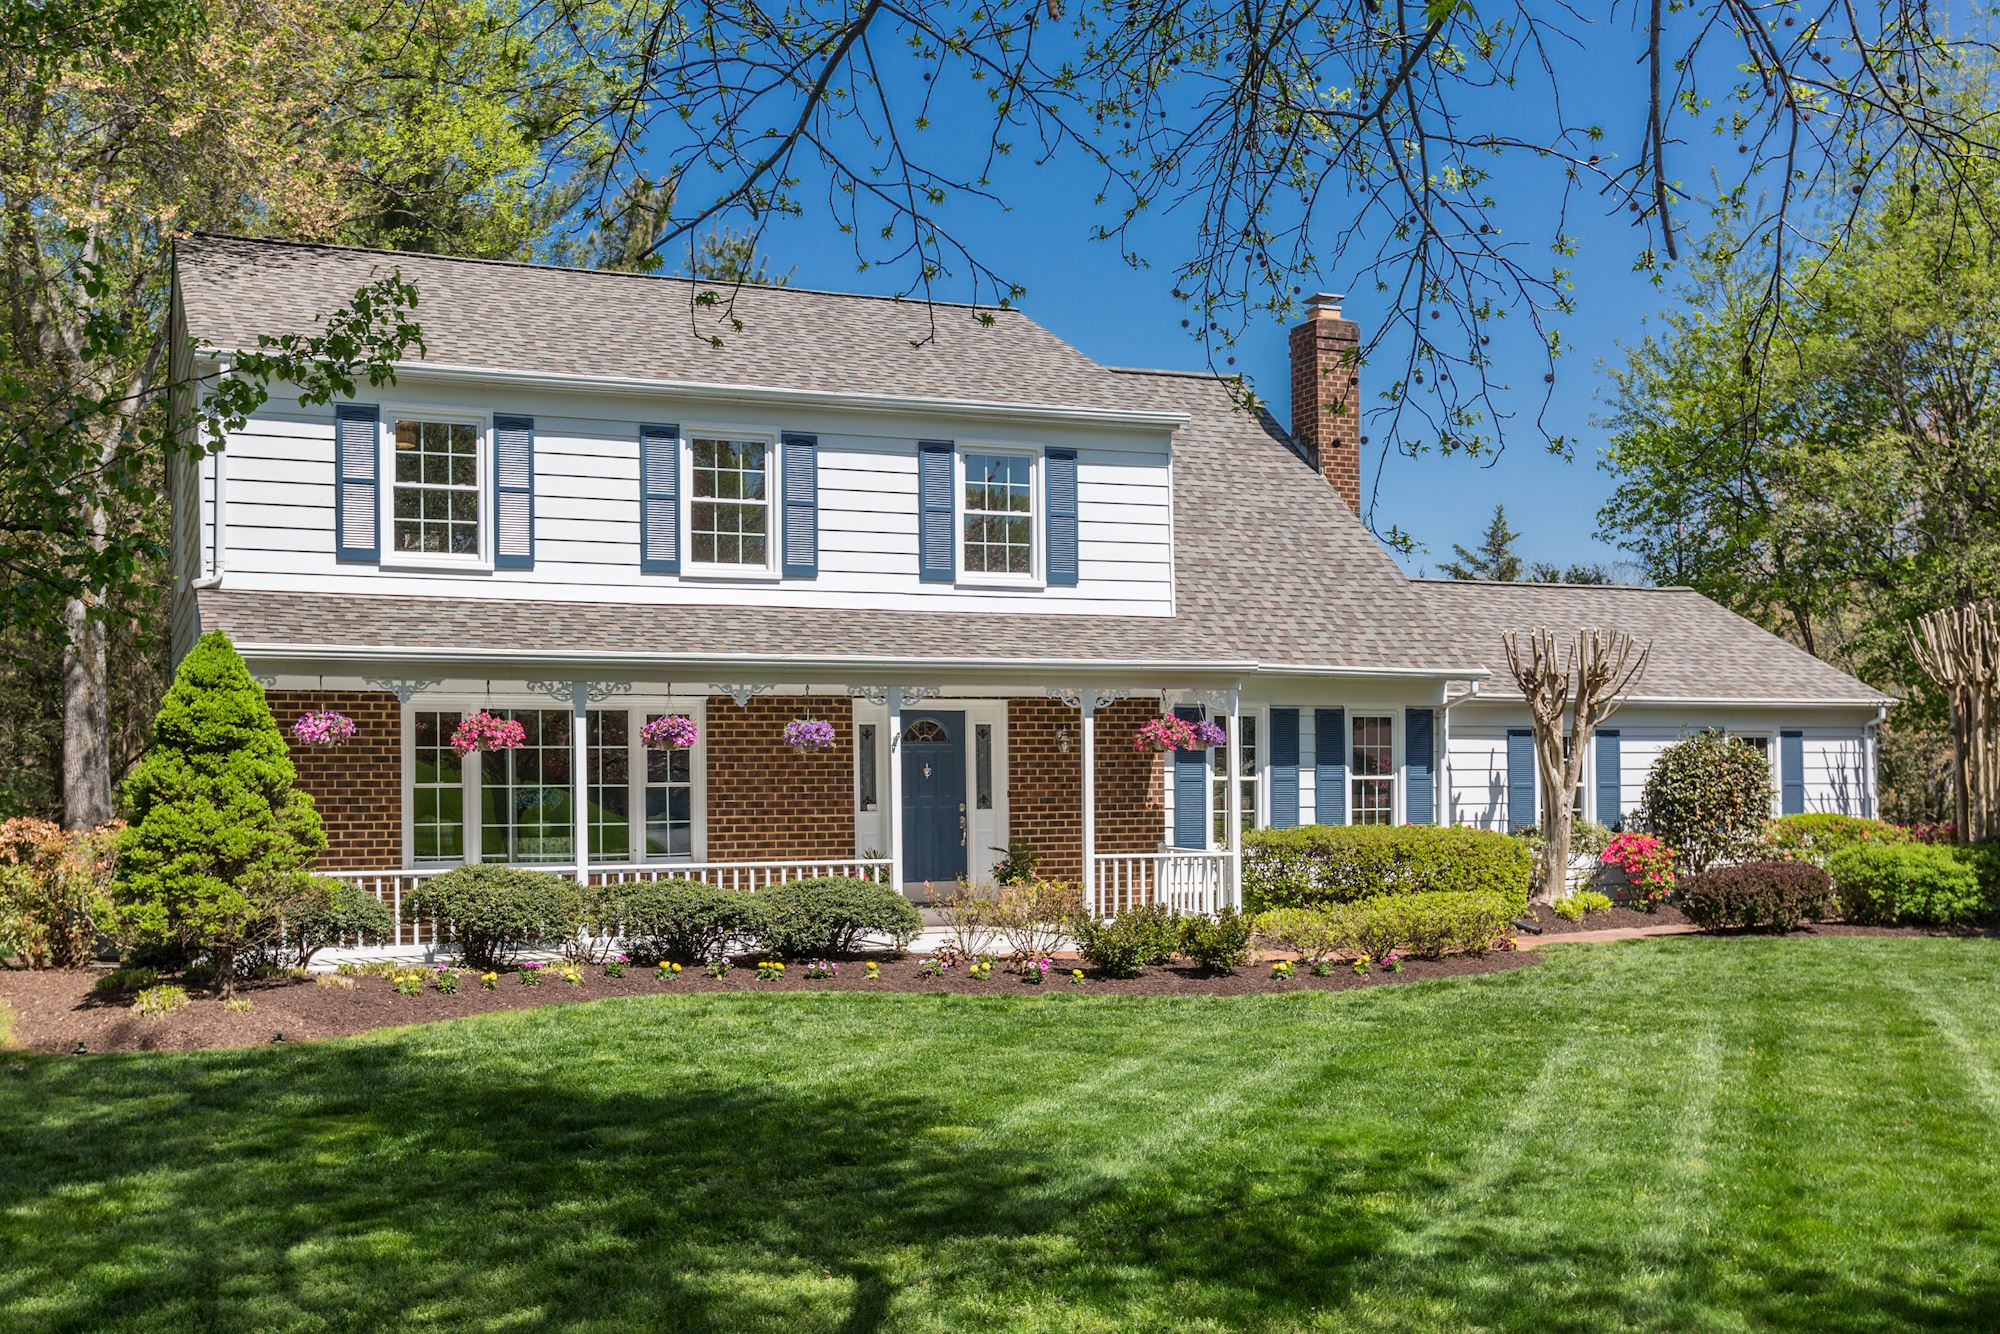 NEW LISTING: 4 BD Colonial in Heart of Great Falls